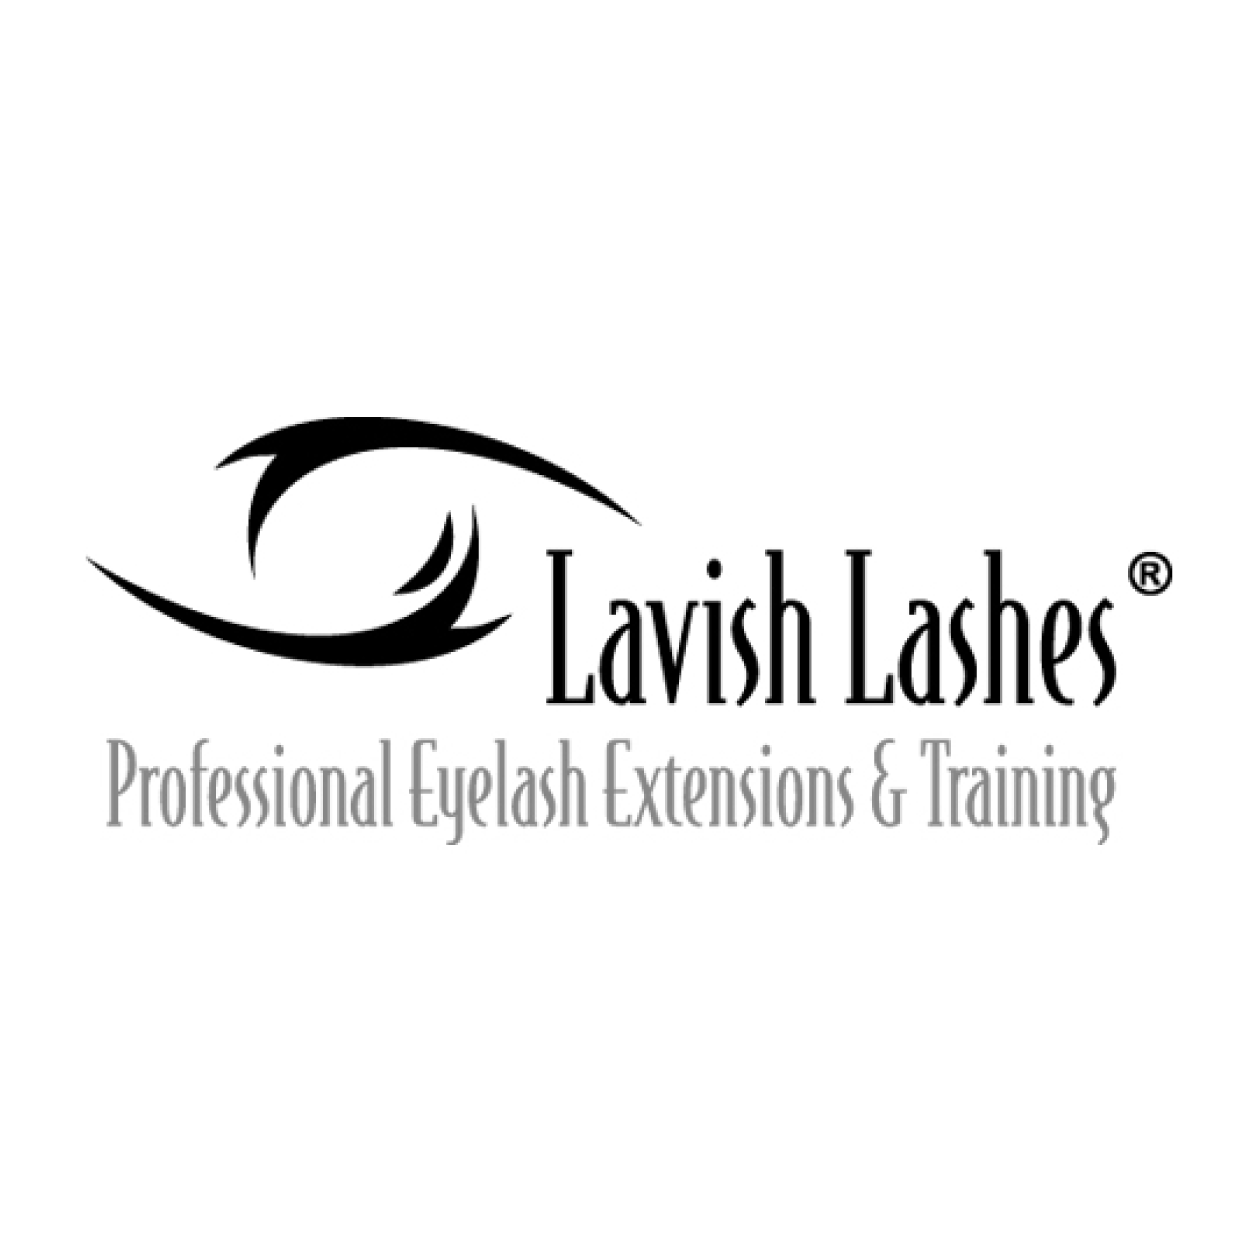 xo-lashes-by-ann-certification-logos_lavish lashes-grayscale.png